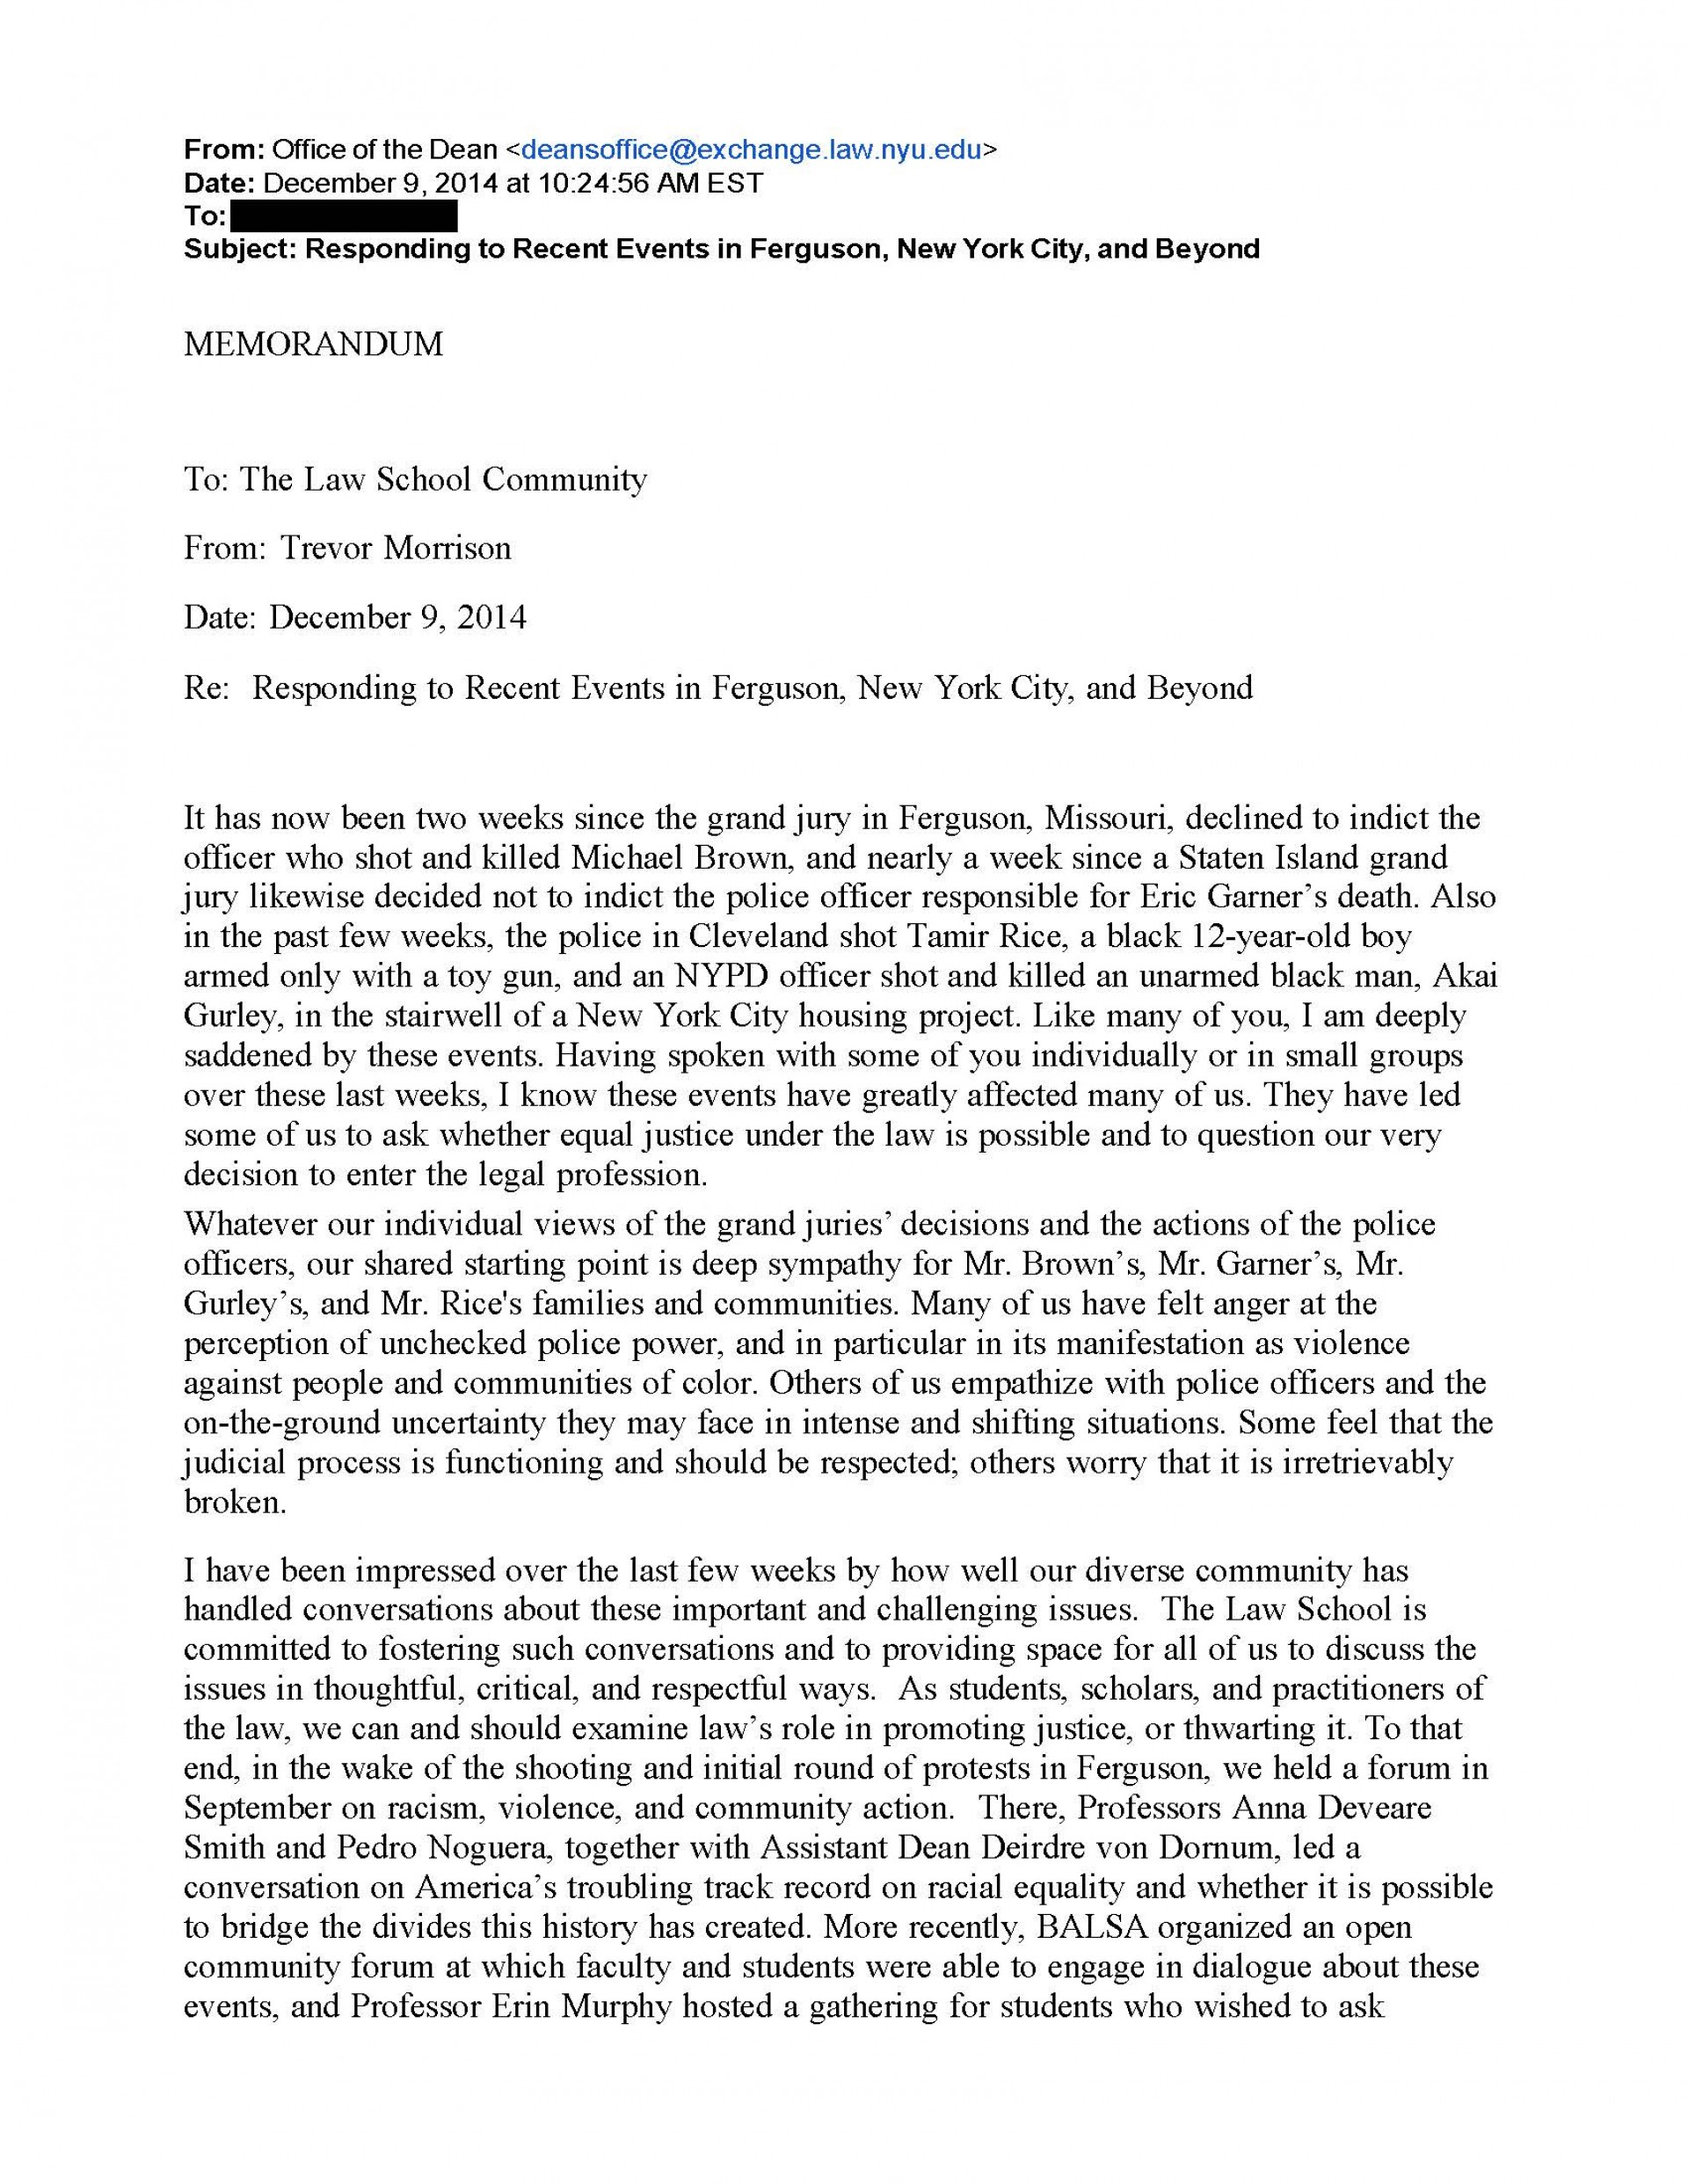 005 Nyu Response 14 Page 1 Essay Example Why Exceptional Supplement Examples College Confidential 1920